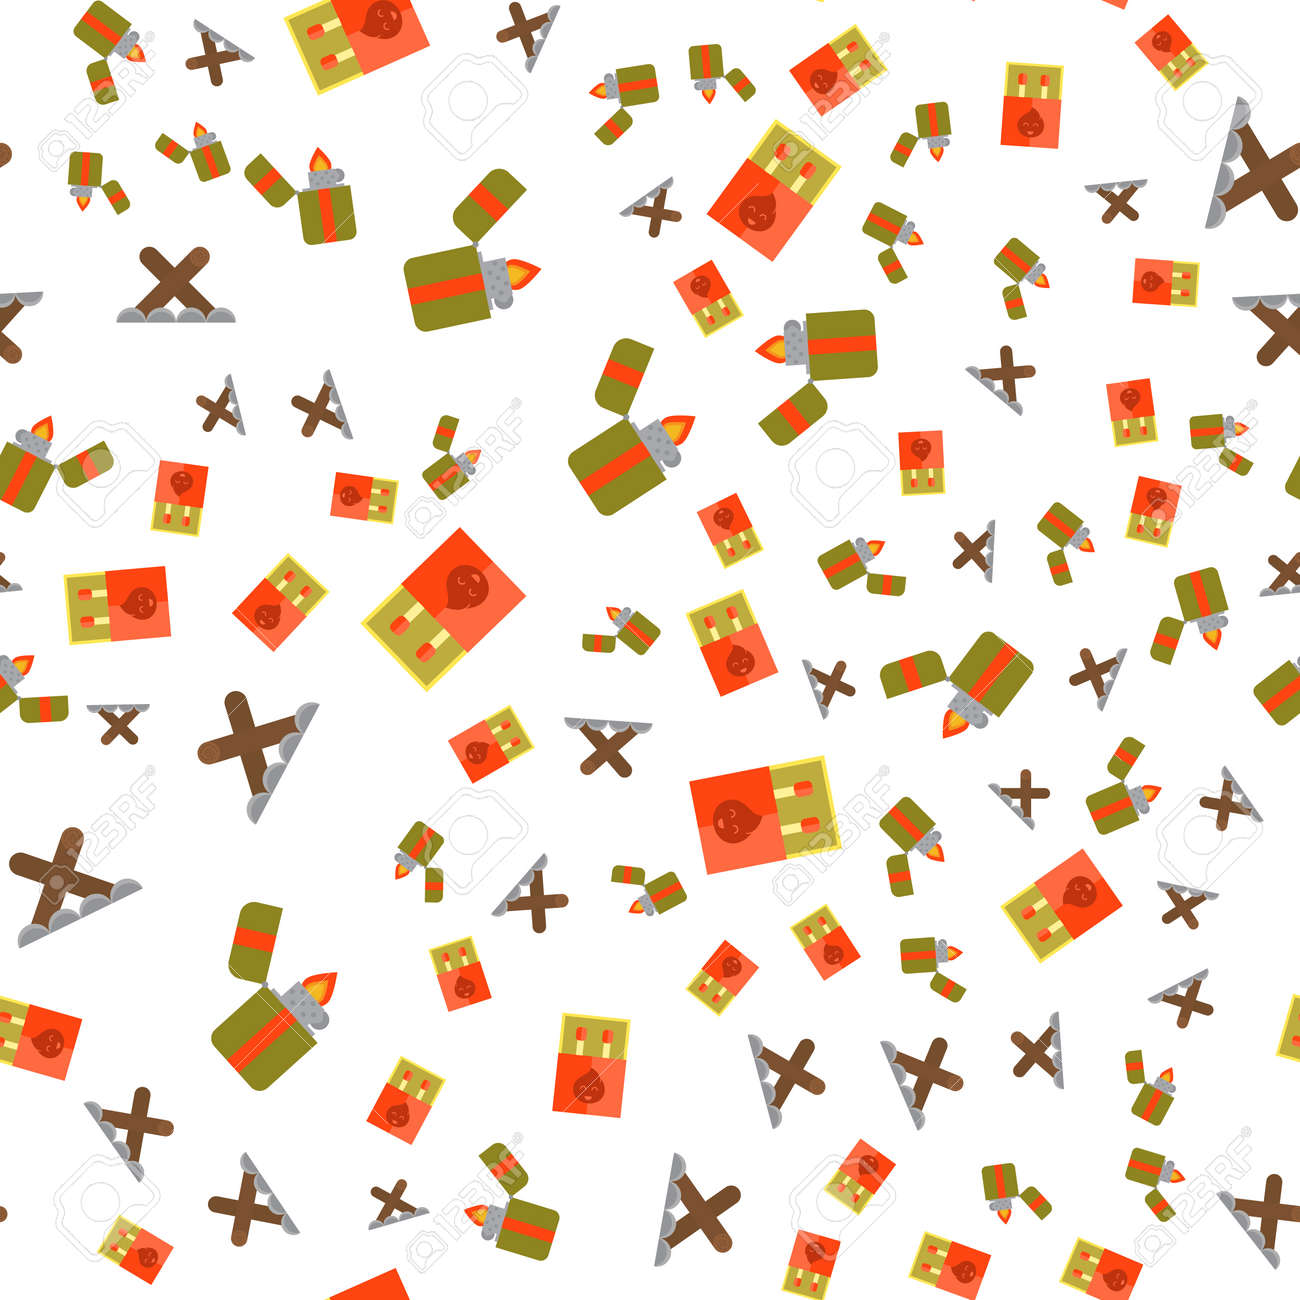 Seamless Pattern Of Camping Gear Elements Can Be Used For Wallpaper Royalty Free Cliparts Vectors And Stock Illustration Image 77738756